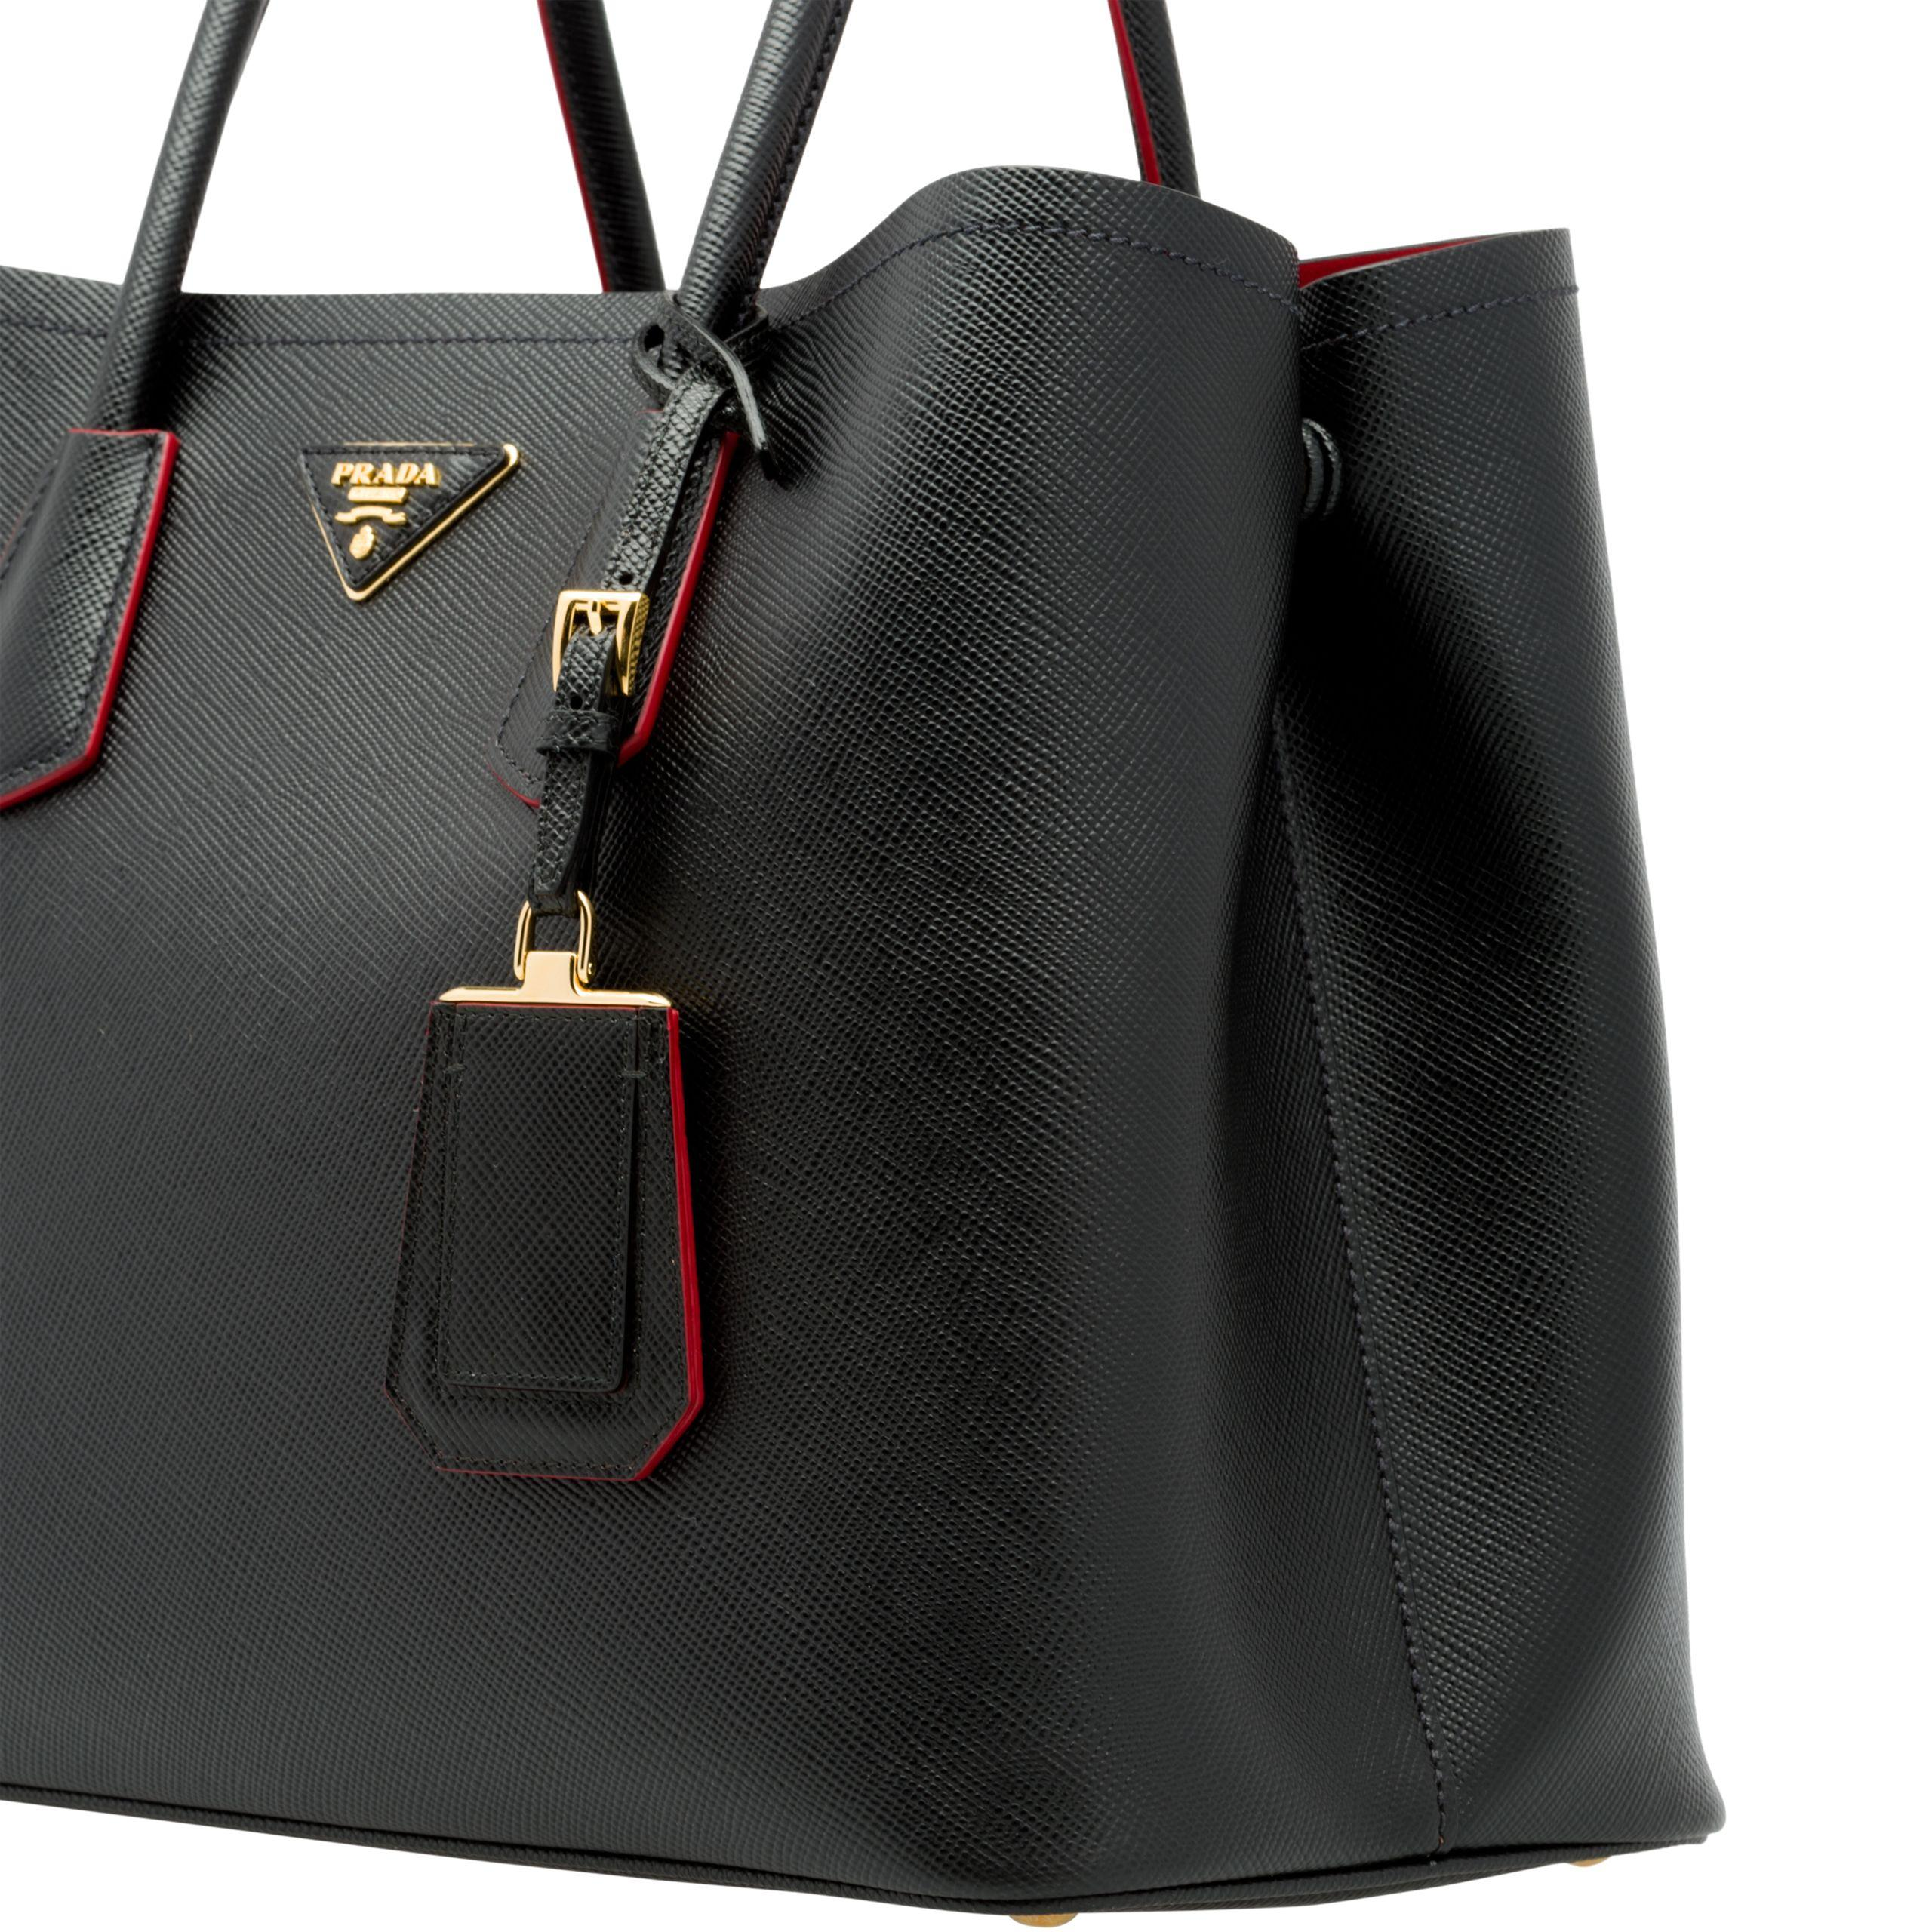 06ad5816857 Prada Double Bag Large in Black - Lyst